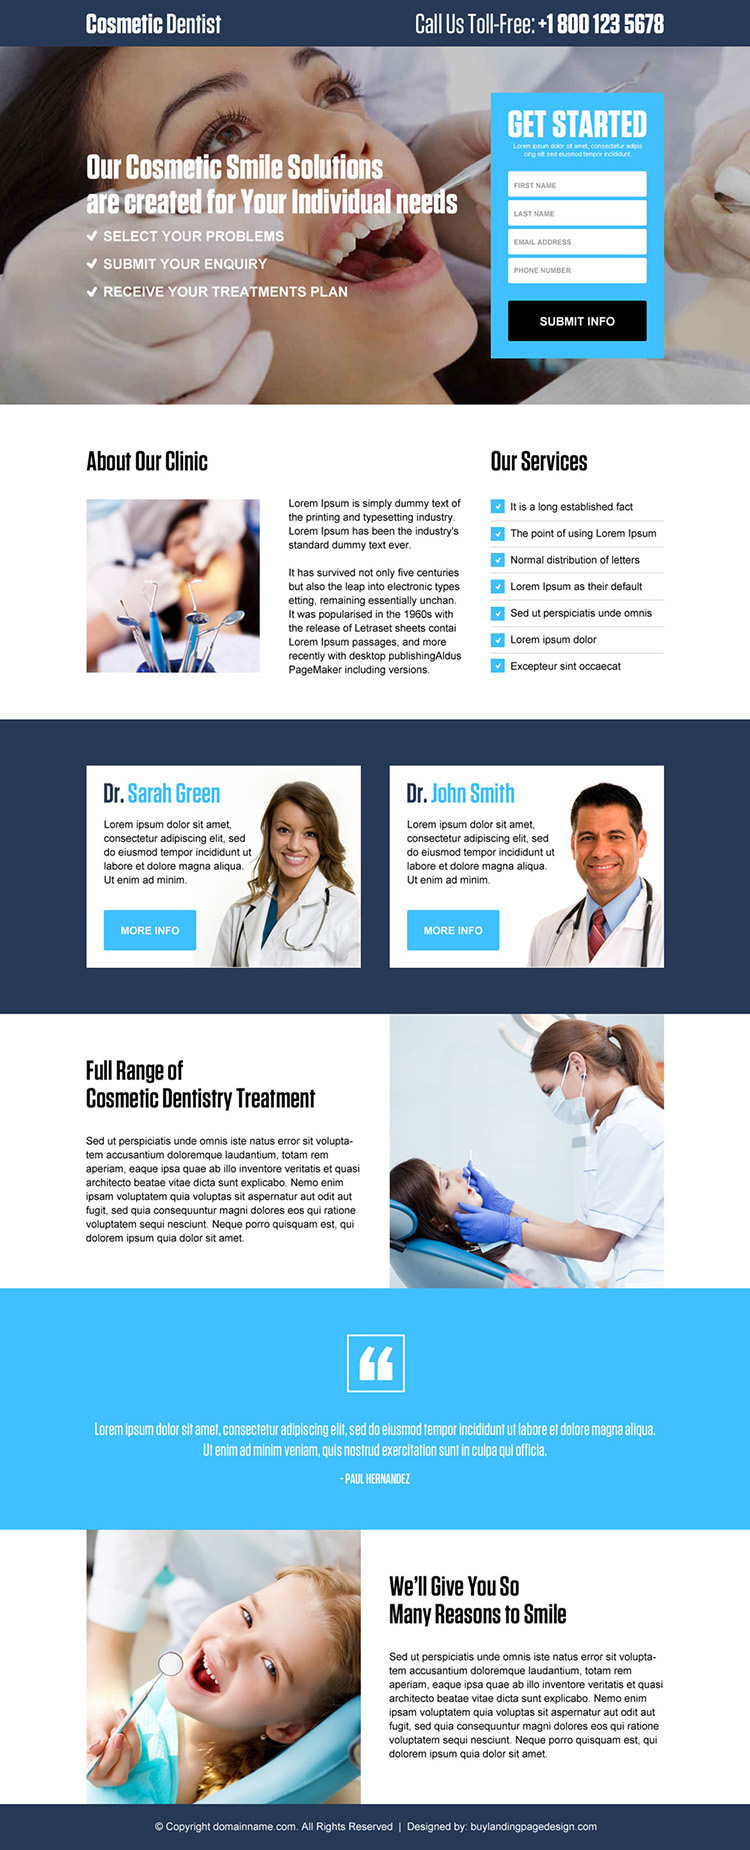 dentist lead generating responsive landing page design